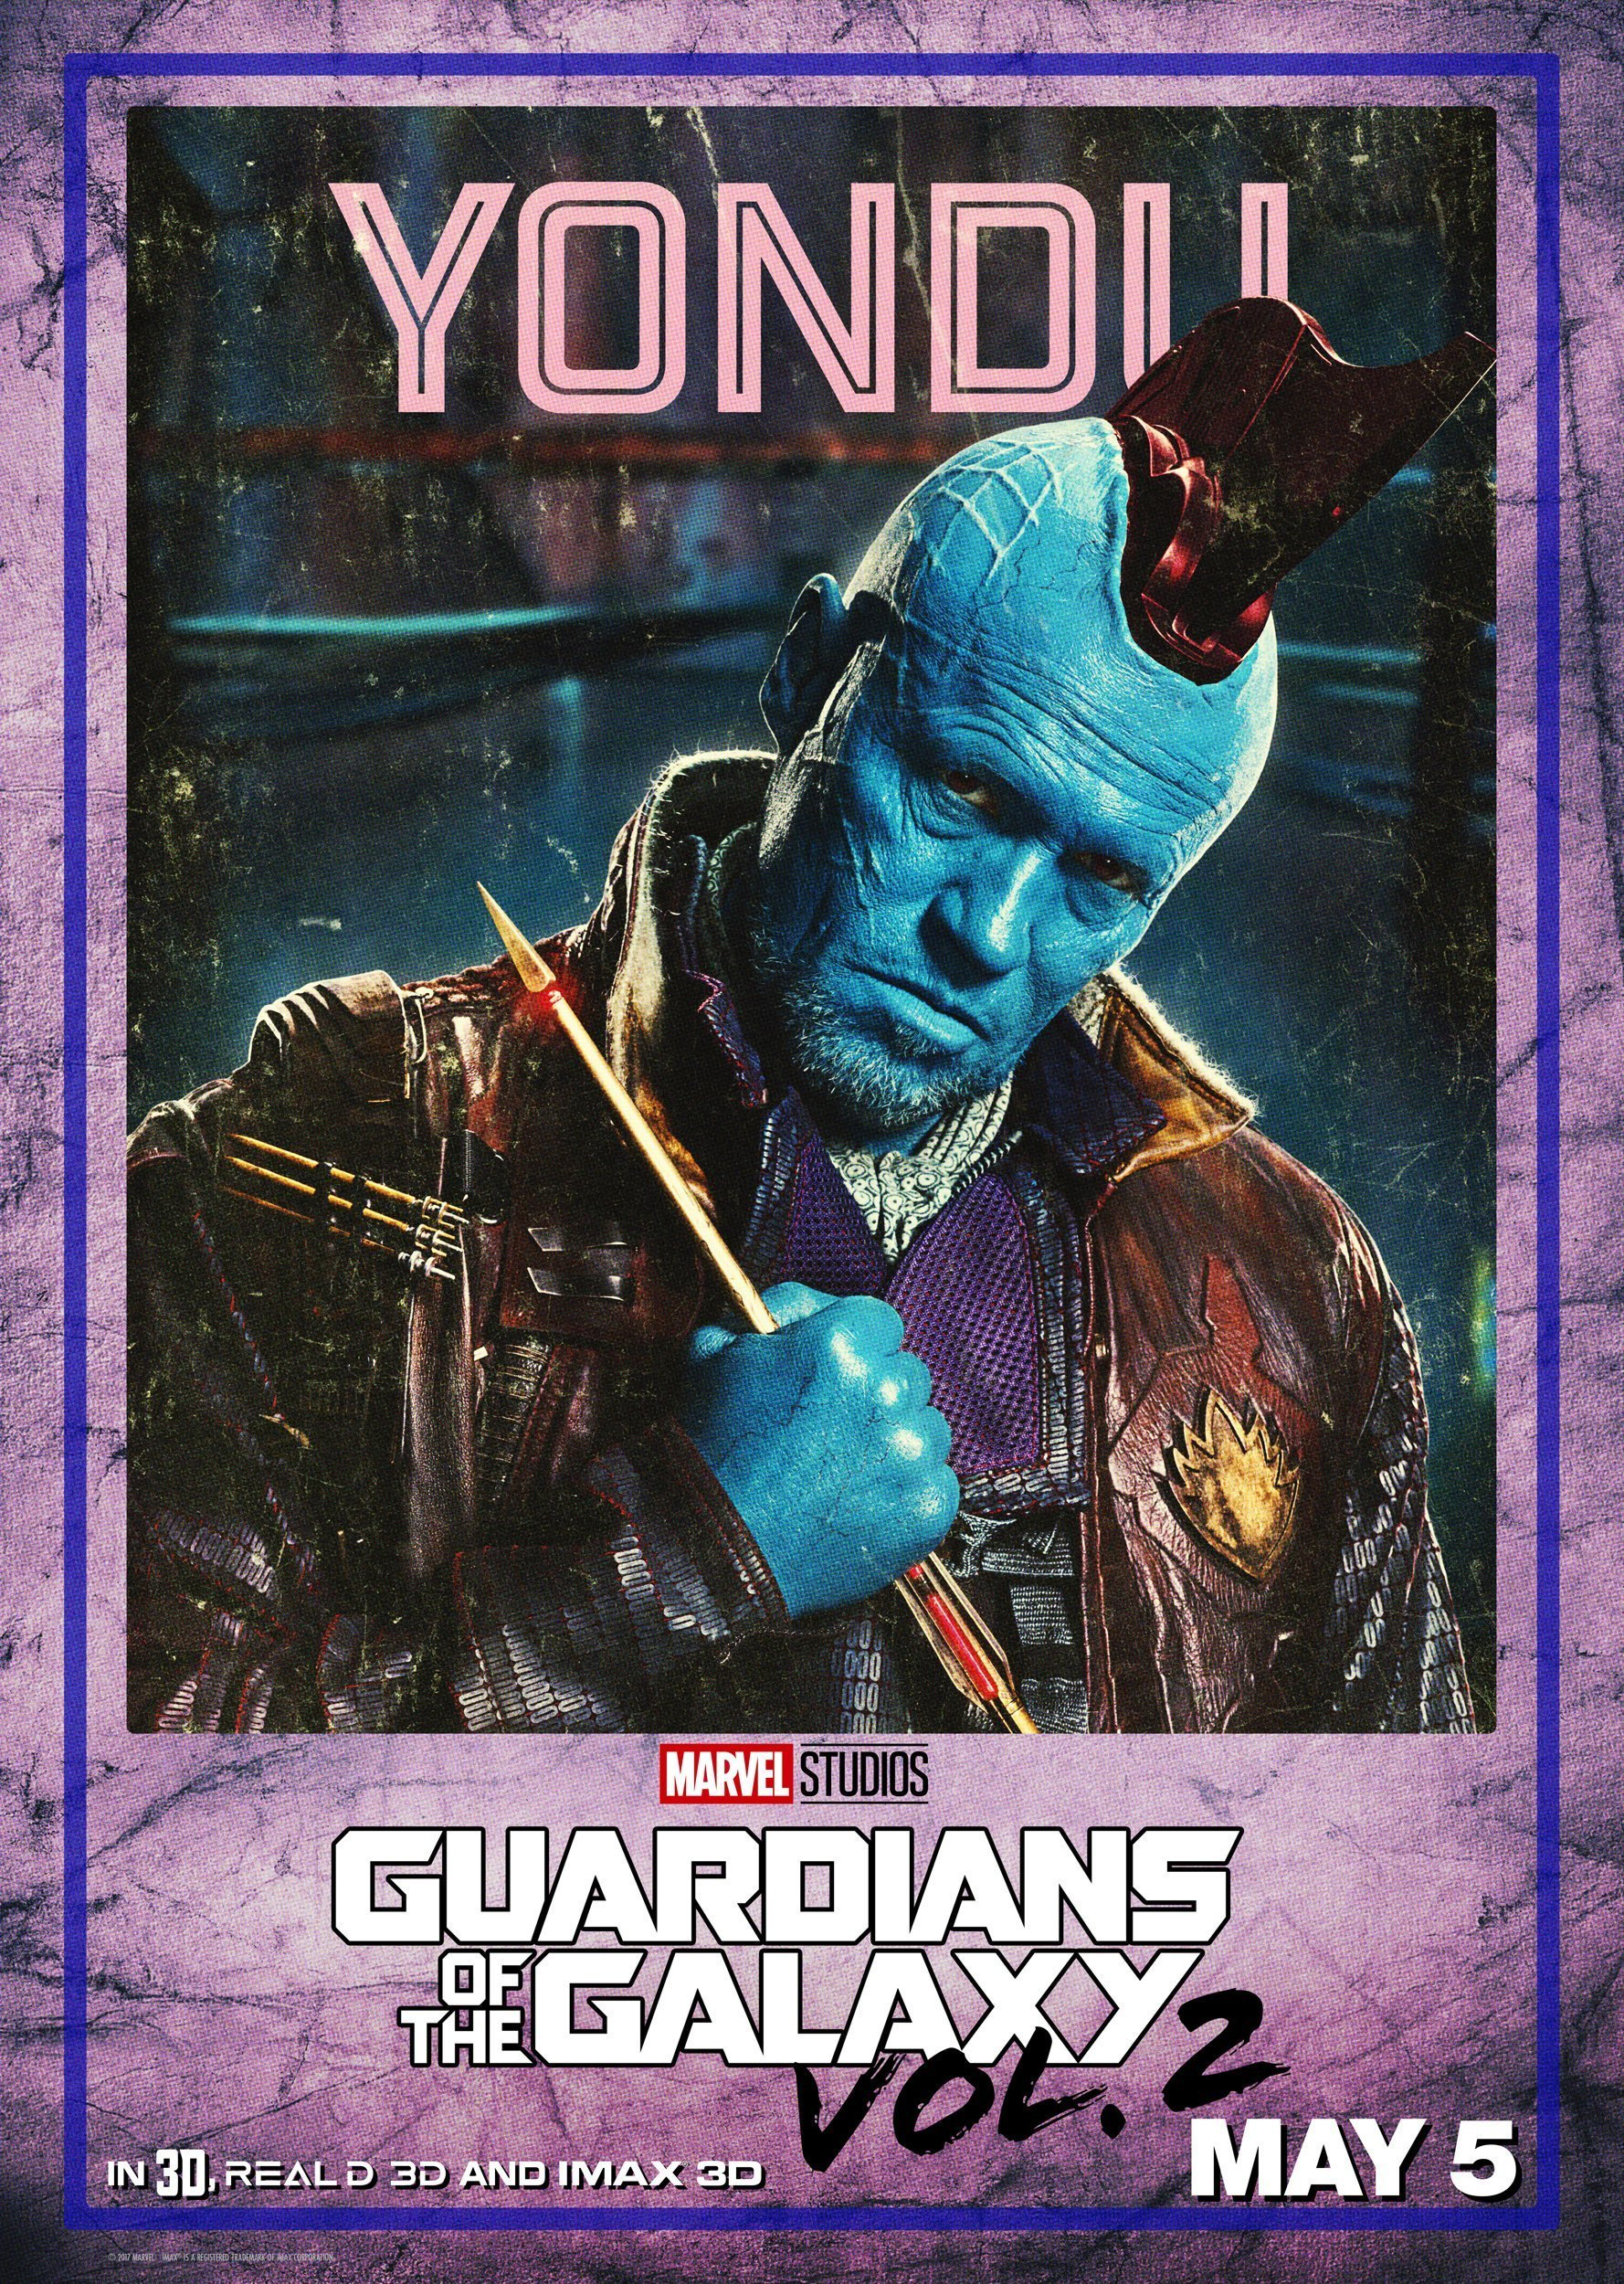 poster les gardiens de la galaxie vol 2 yondu michael rooker. Black Bedroom Furniture Sets. Home Design Ideas